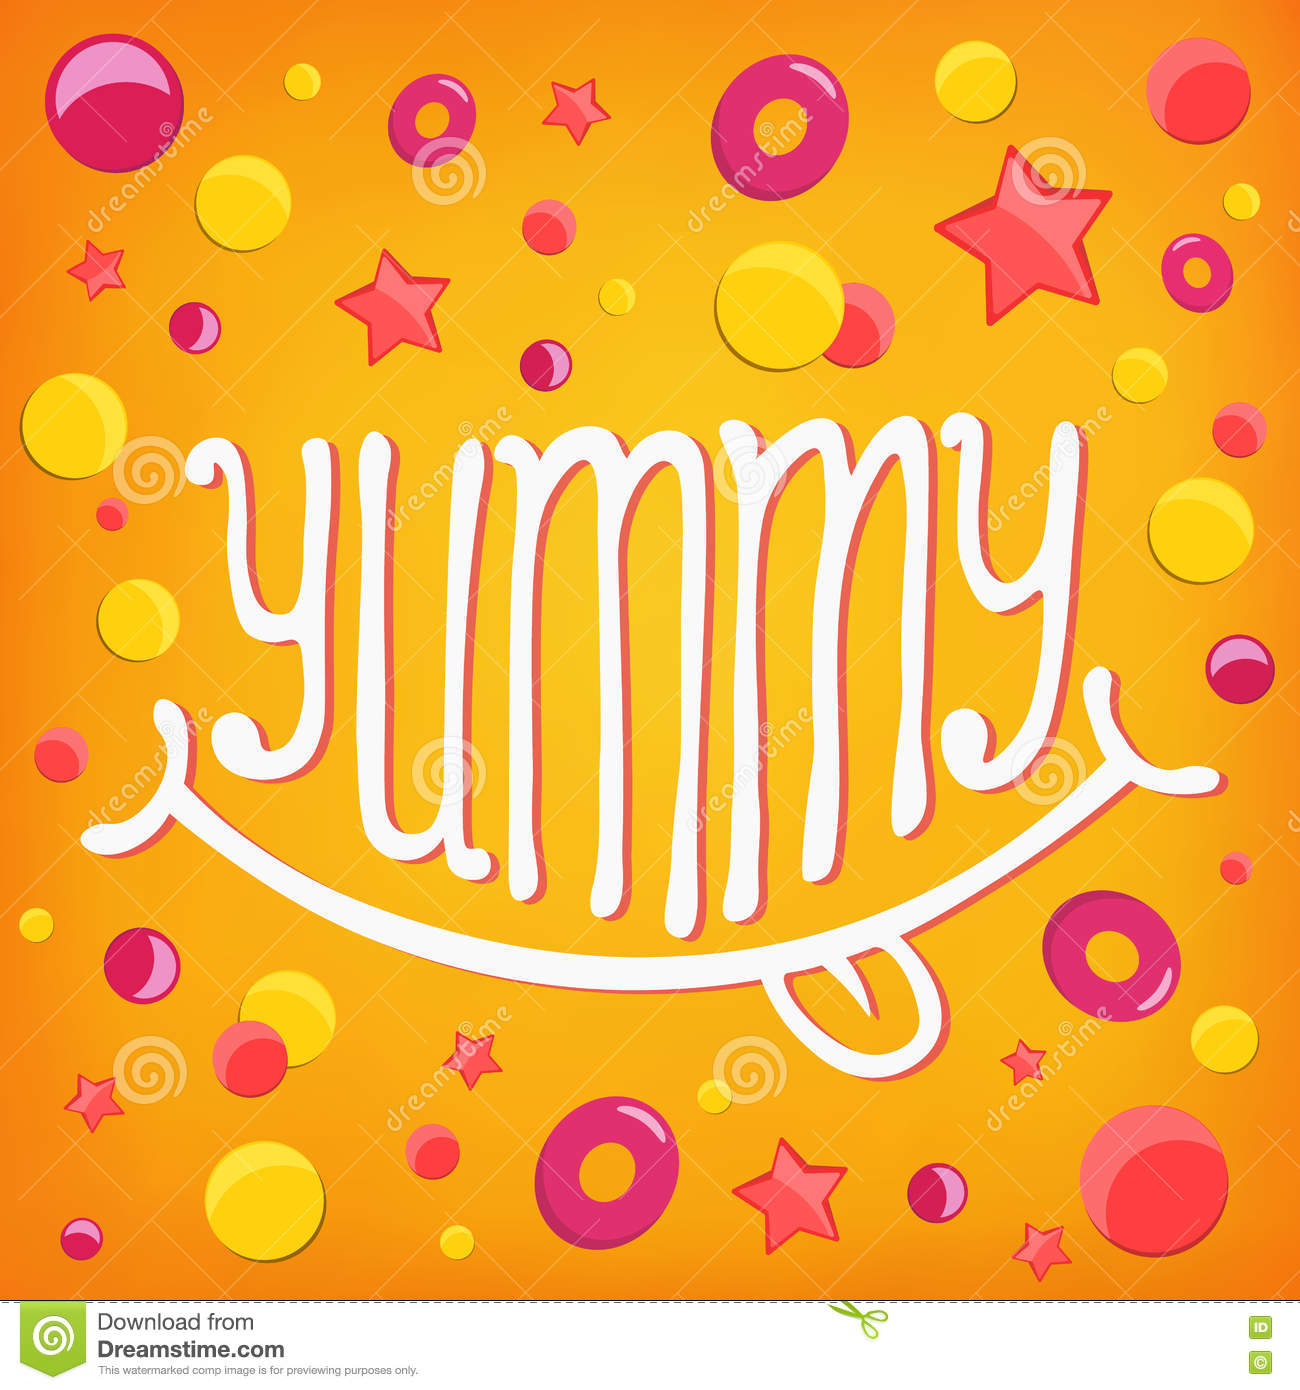 Smiley icon. Yummy lettering concept